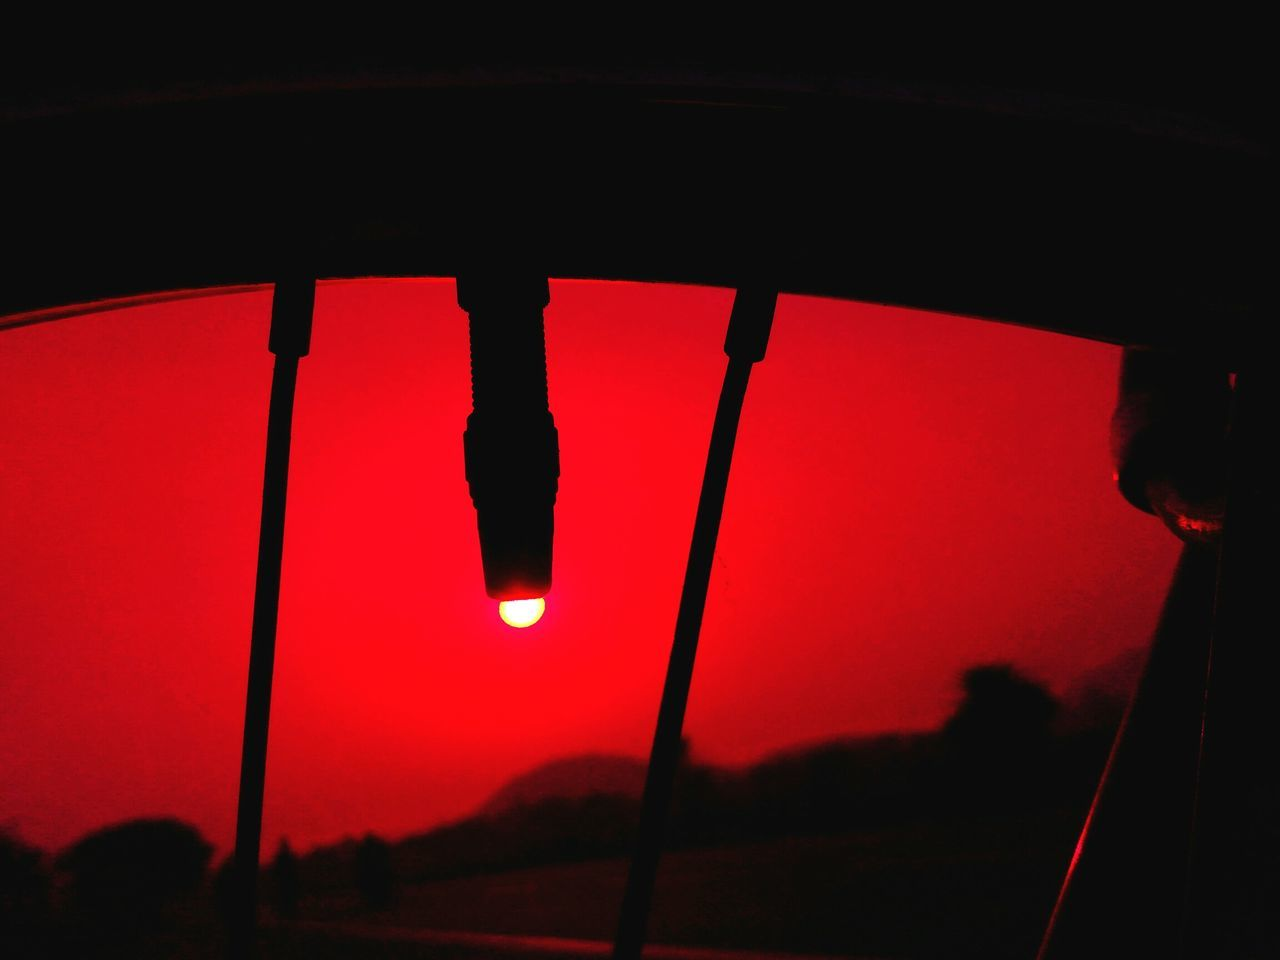 sunset, red, silhouette, nature, no people, outdoors, low angle view, beauty in nature, sky, close-up, illuminated, day